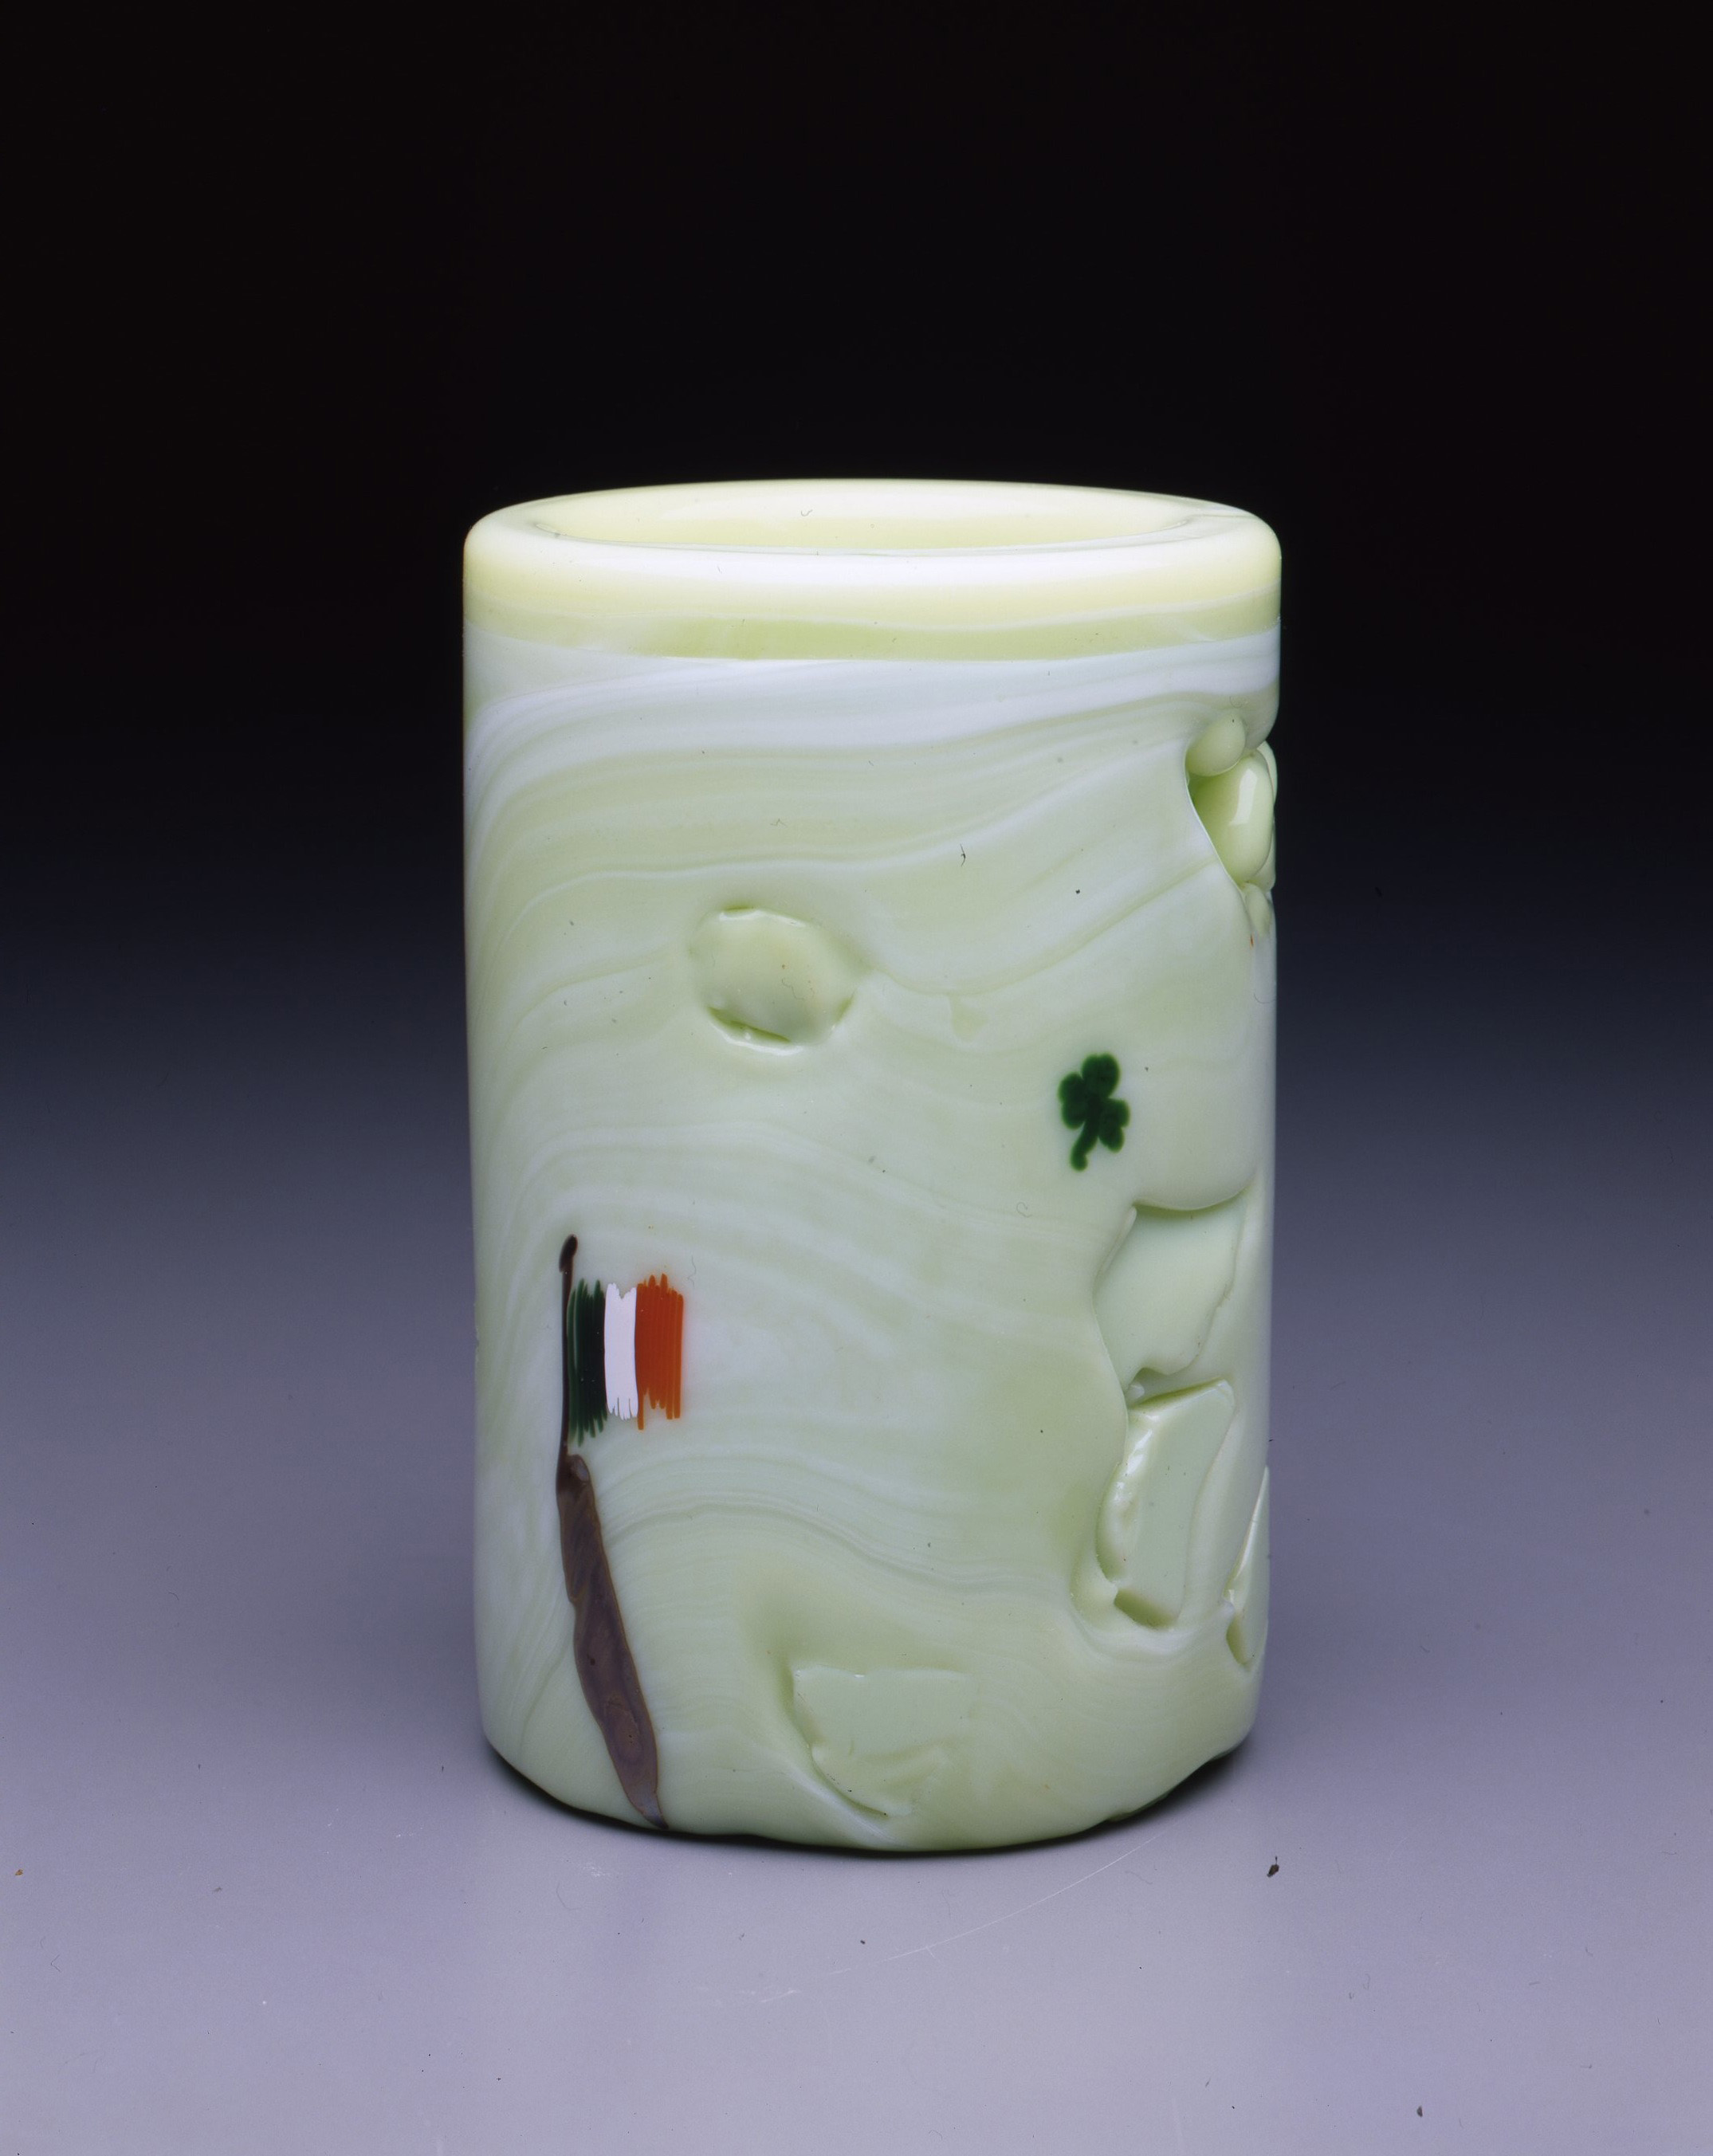 Dale Chihuly,  Irish Cylinder #6   (1975, glass, 6 1/2 x 4 inches), DC.268